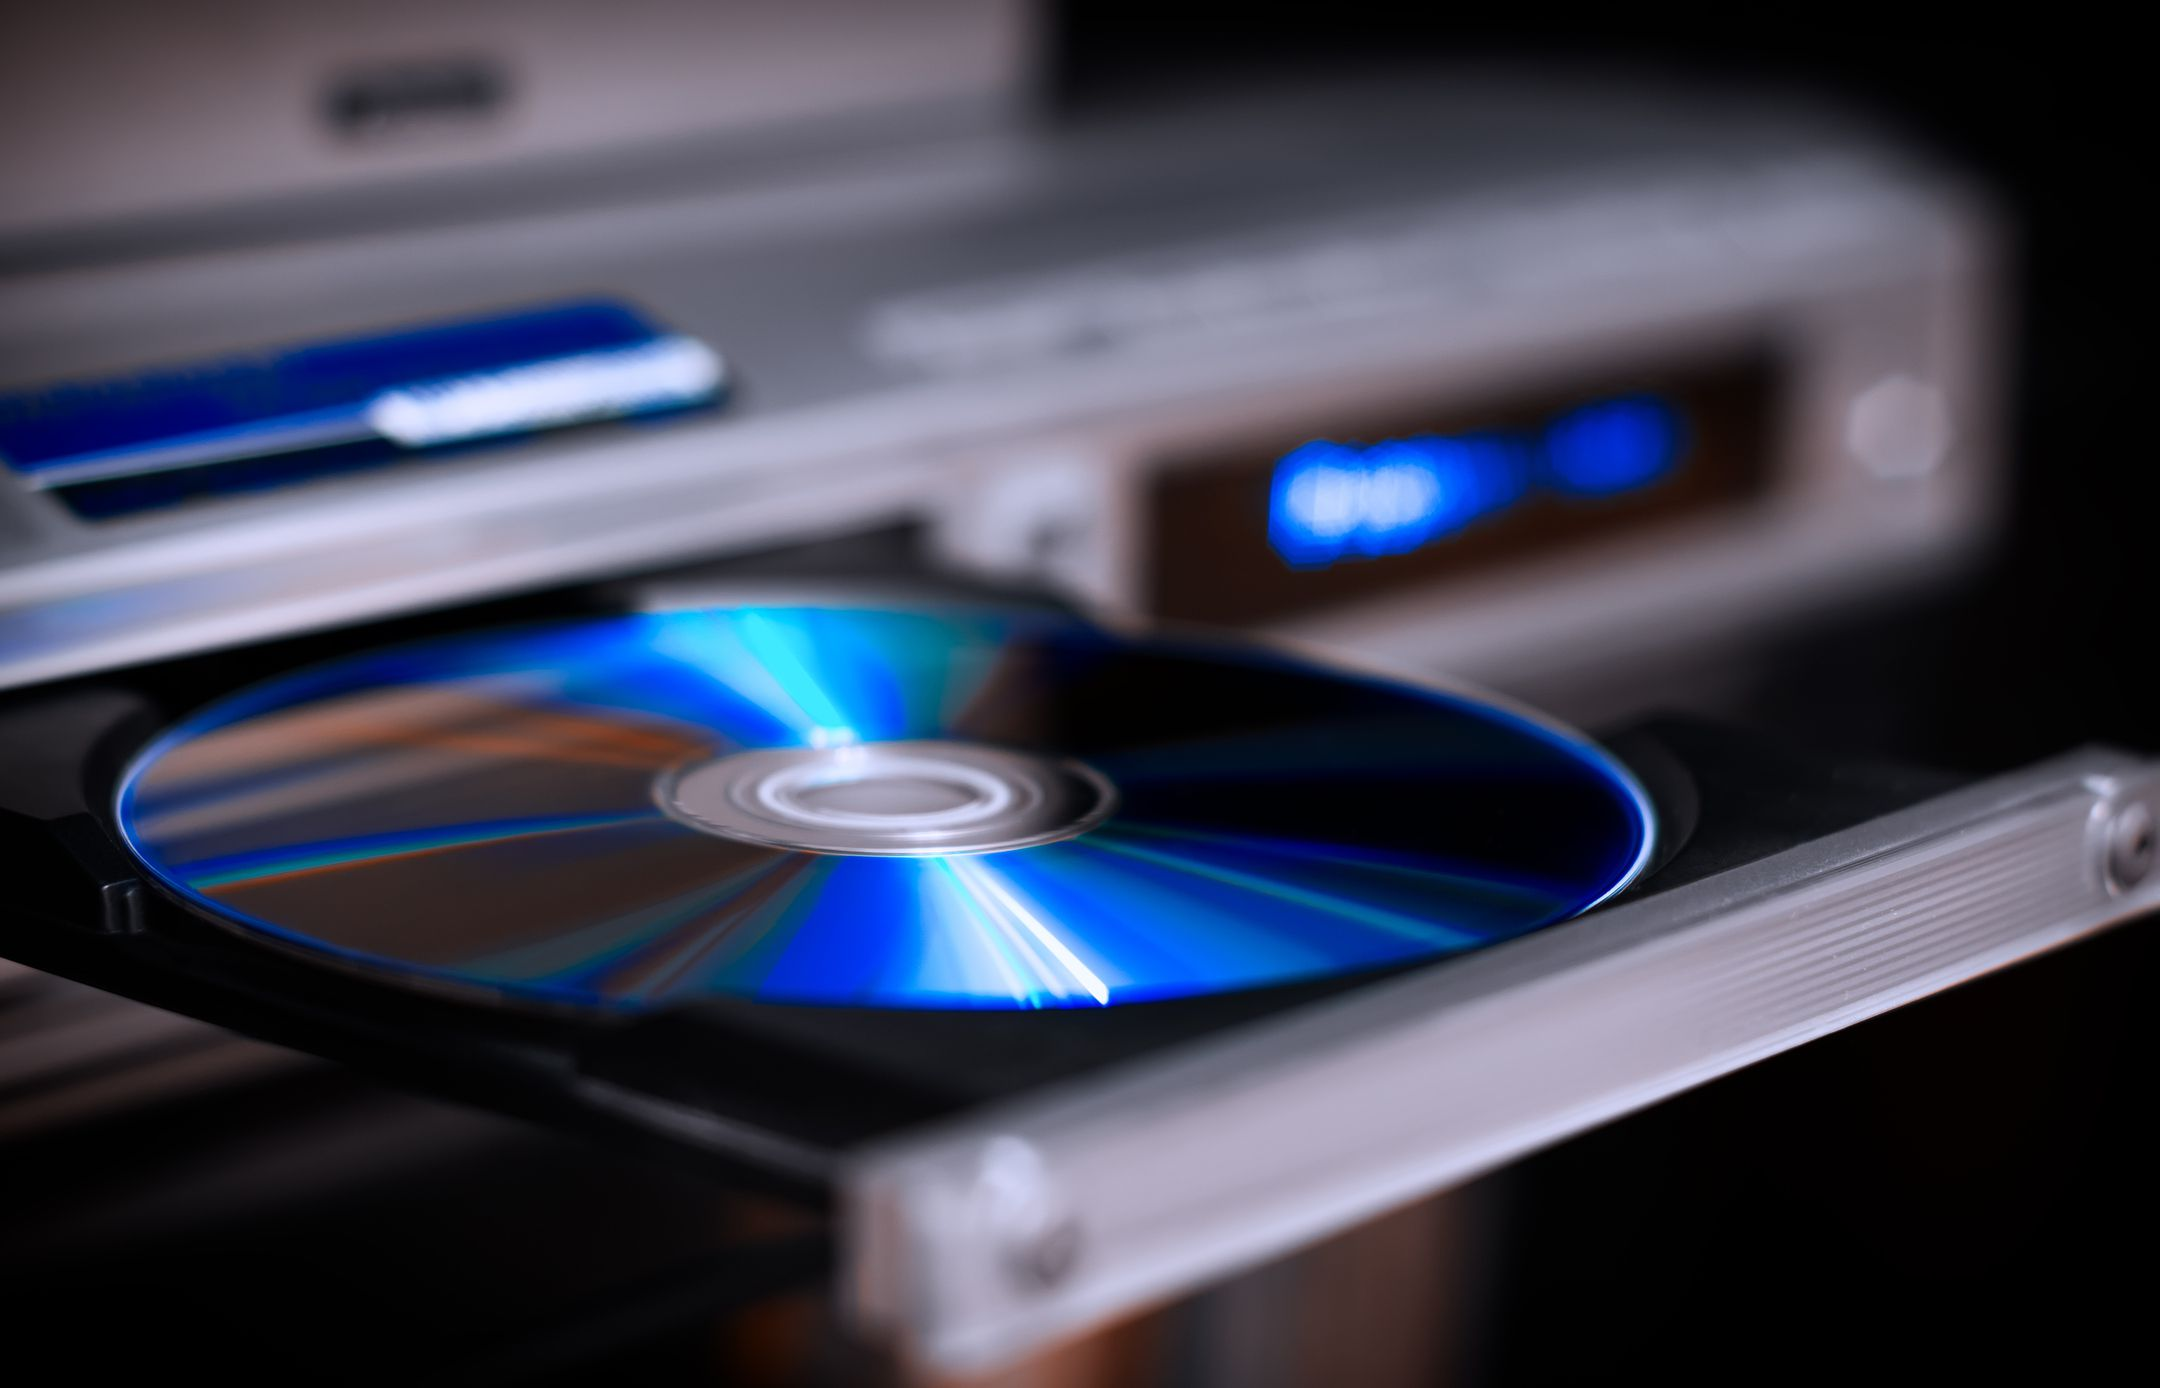 Bluray Movie disc in compatible player.